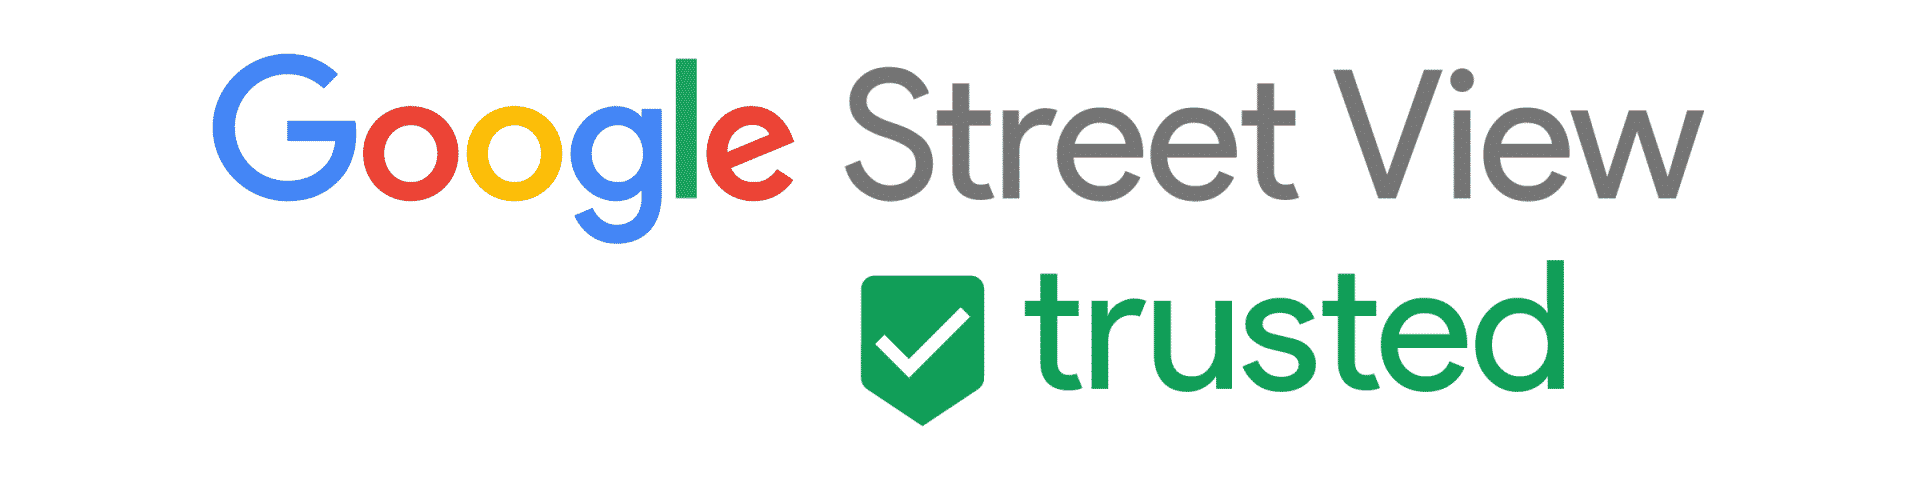 Google Street-view Trusted badge